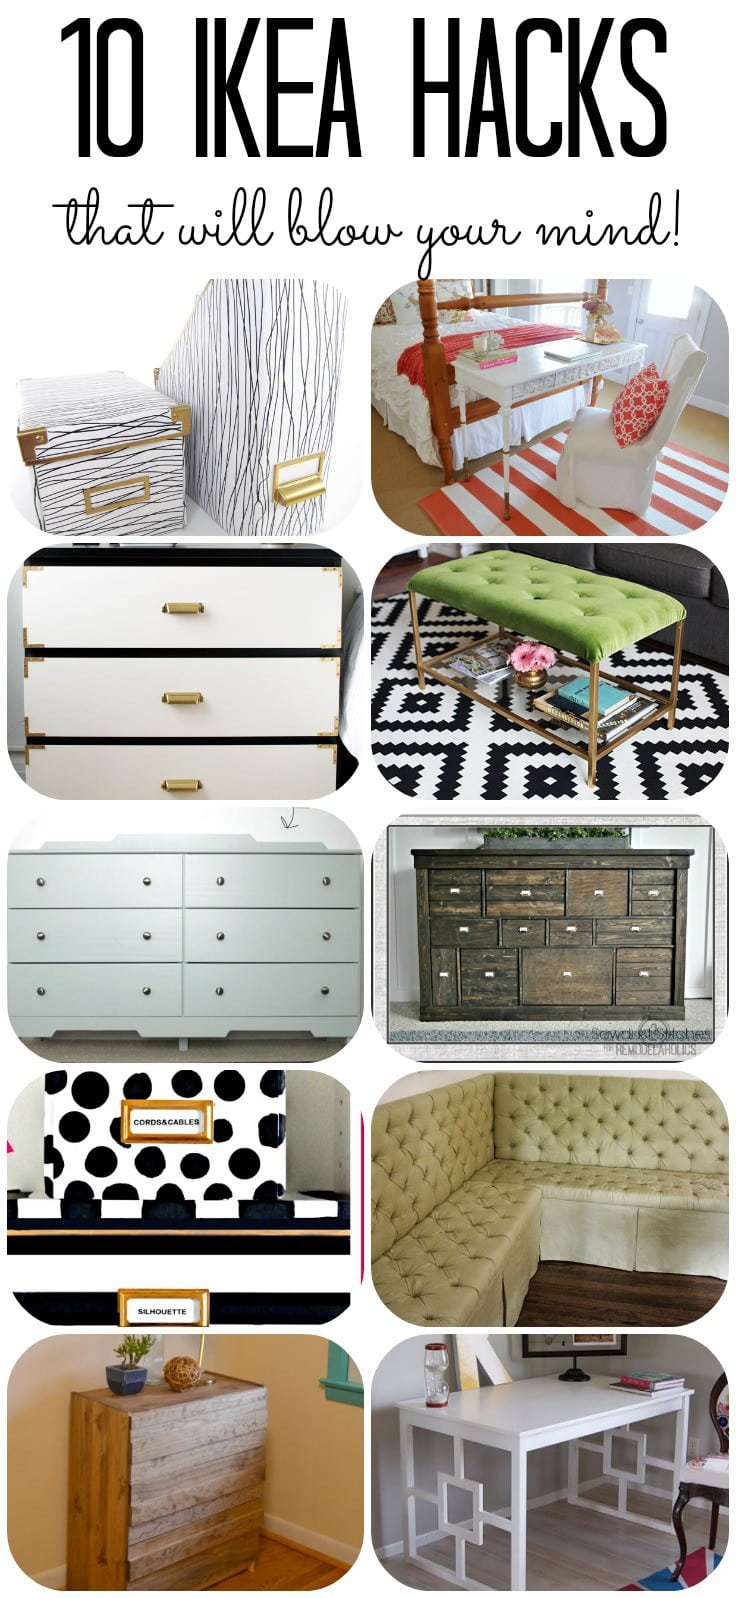 10 Amazing IKEA Furniture Hacks: Inspired DIY Projects